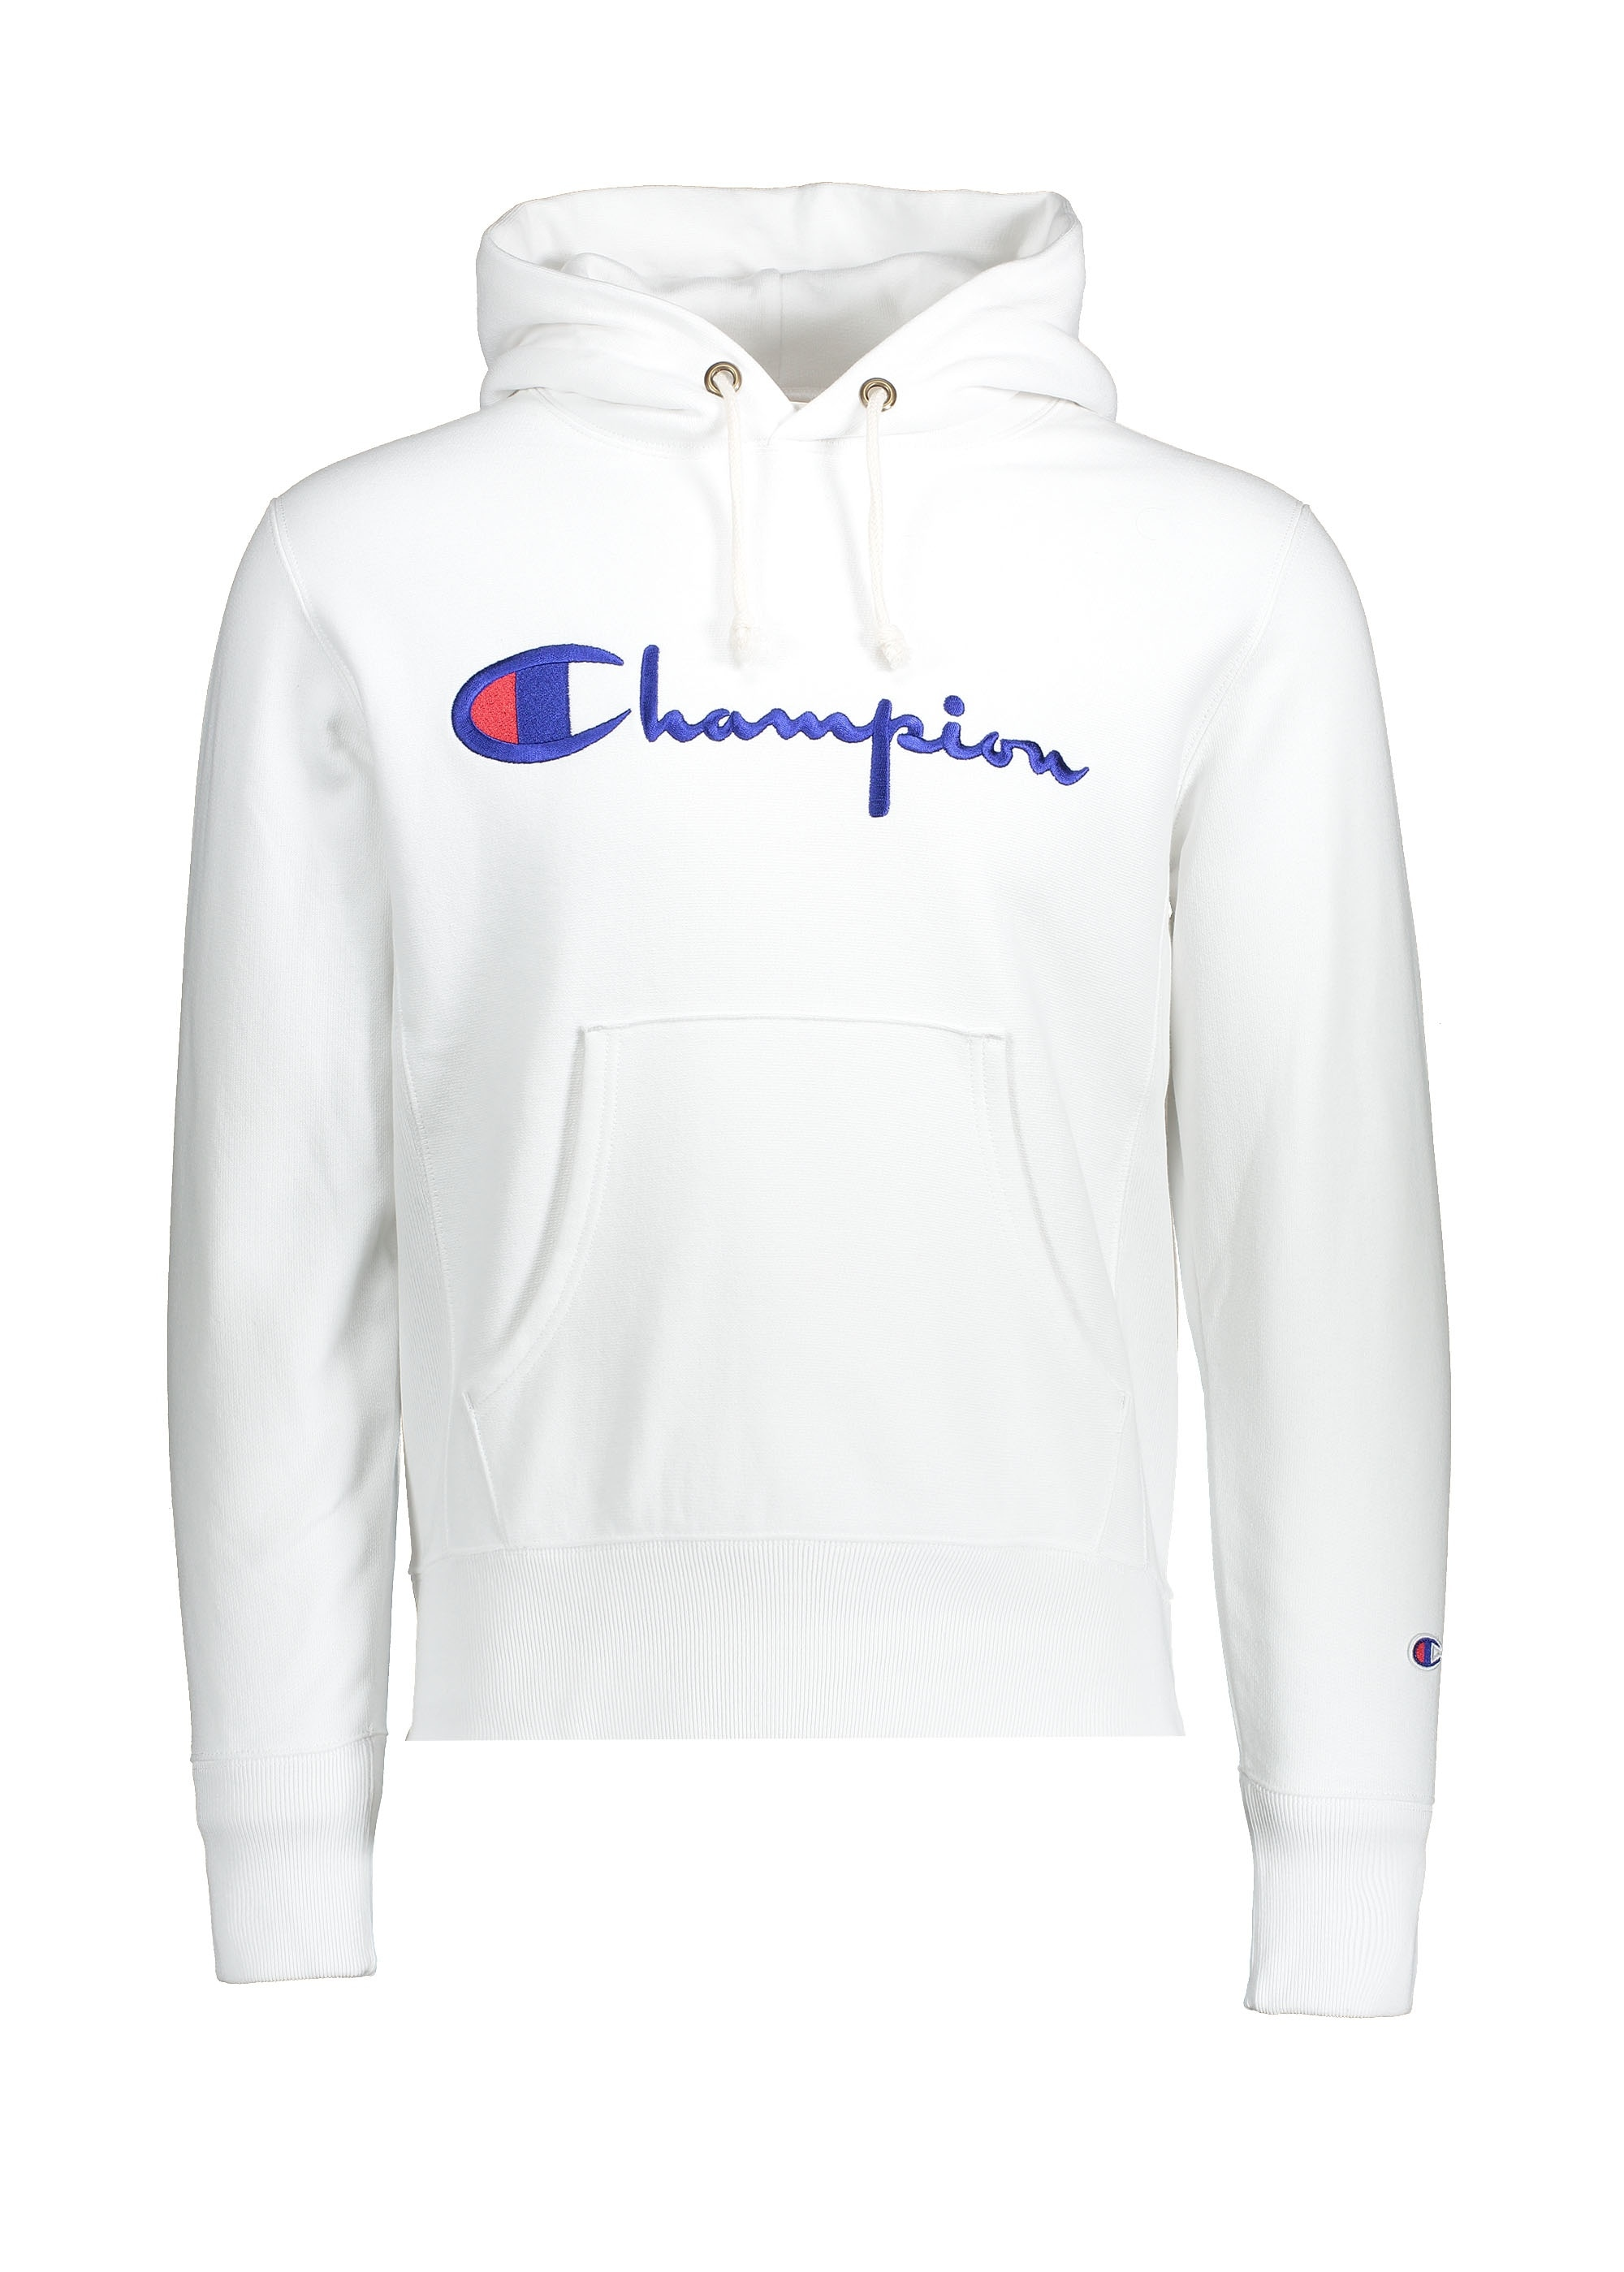 bb9ad1aa5bae Champion Hooded Sweatshirt - White - Hoodies from Triads UK